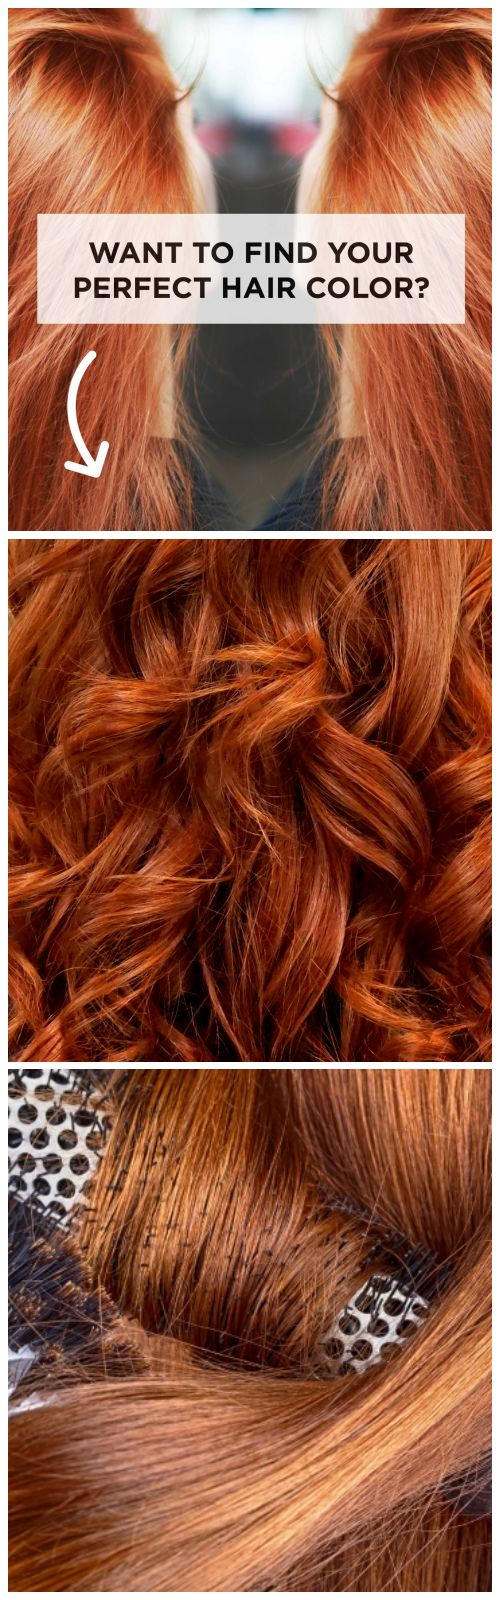 Dread the guessing game of boxed hair color? Get perfectly matching, unique-to-you color with this ultimate hair color secret�